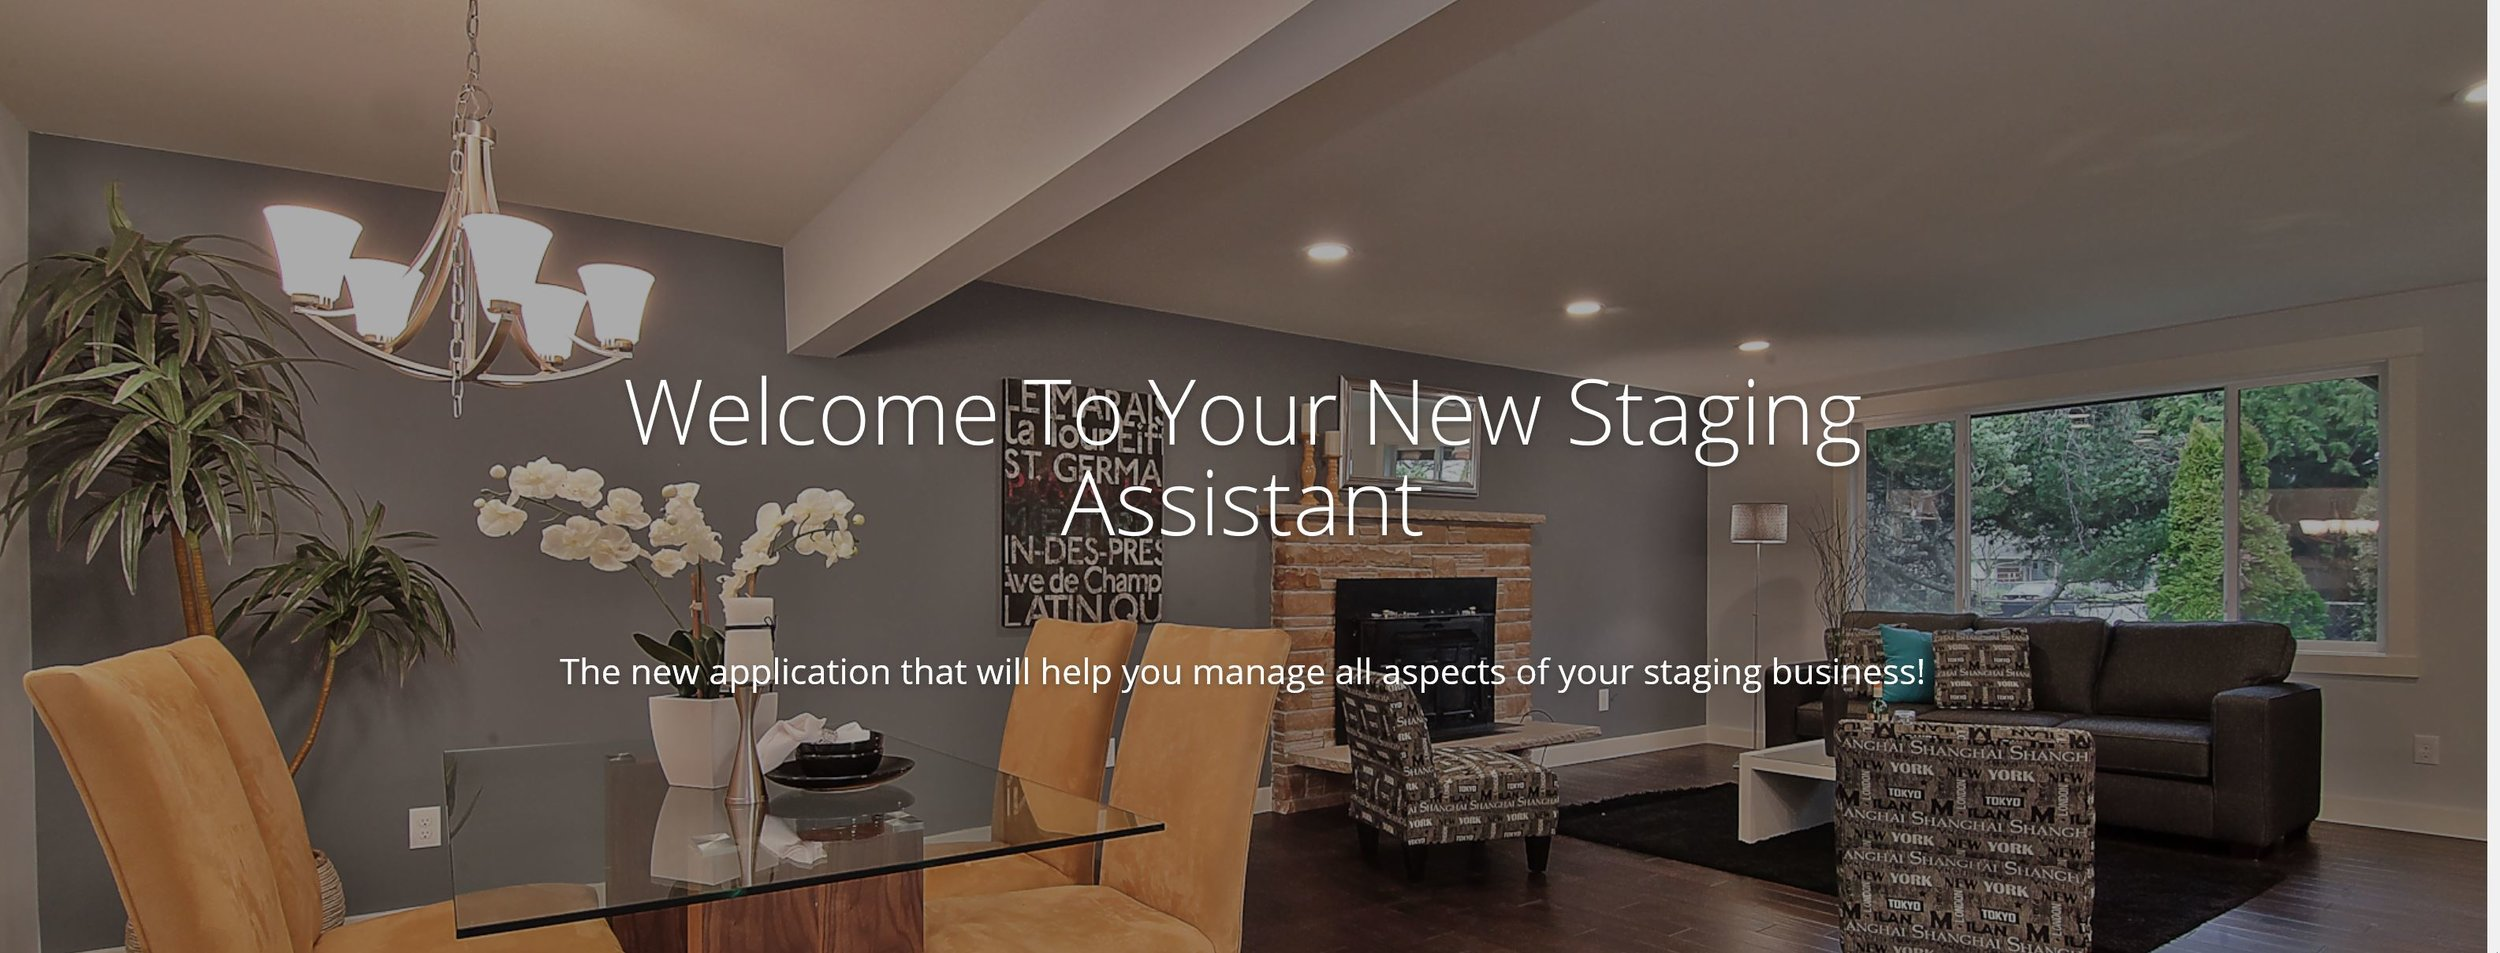 staging assistant banner ad.JPG